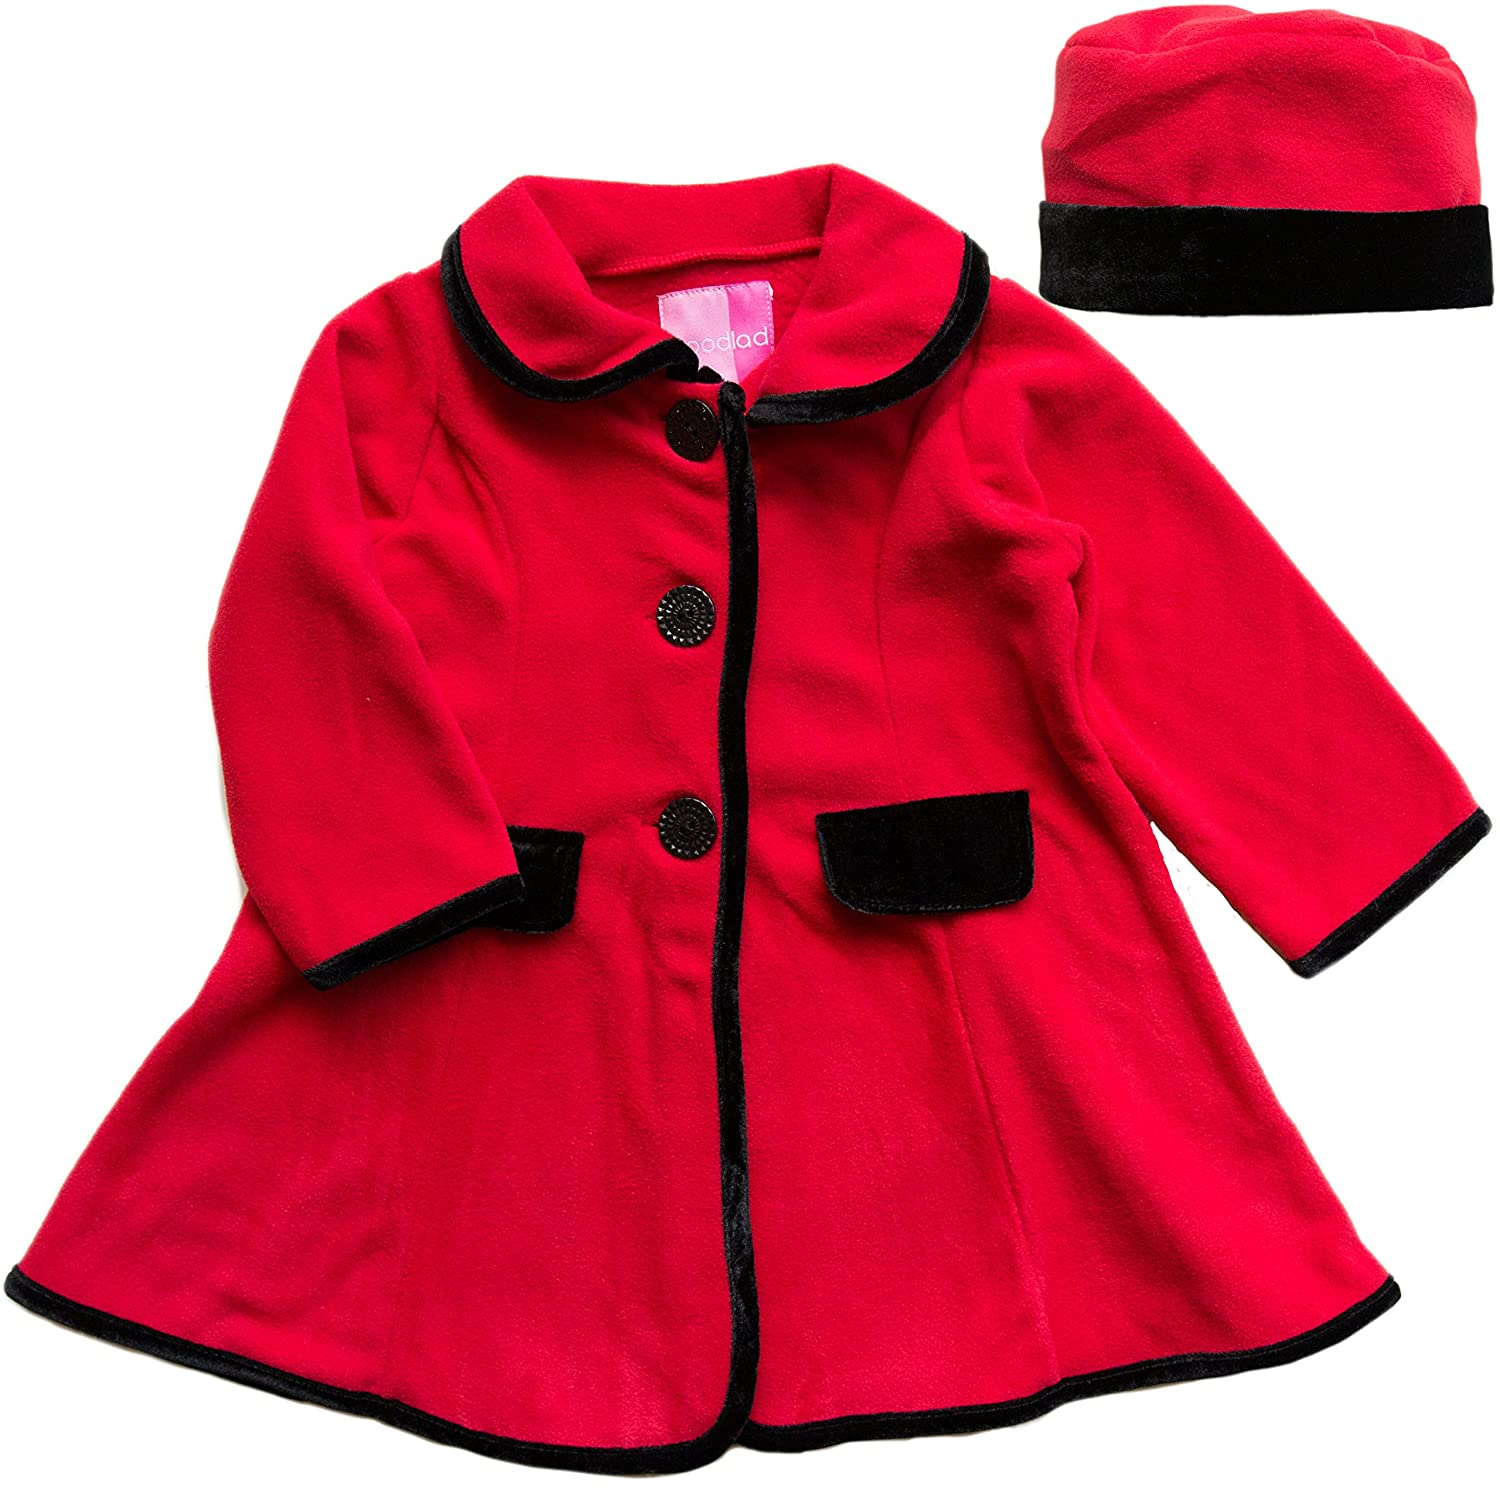 d208d3de9a7c Amazon.com  Good Lad Toddler Girls Fleece Coat with Velvet Trim ...